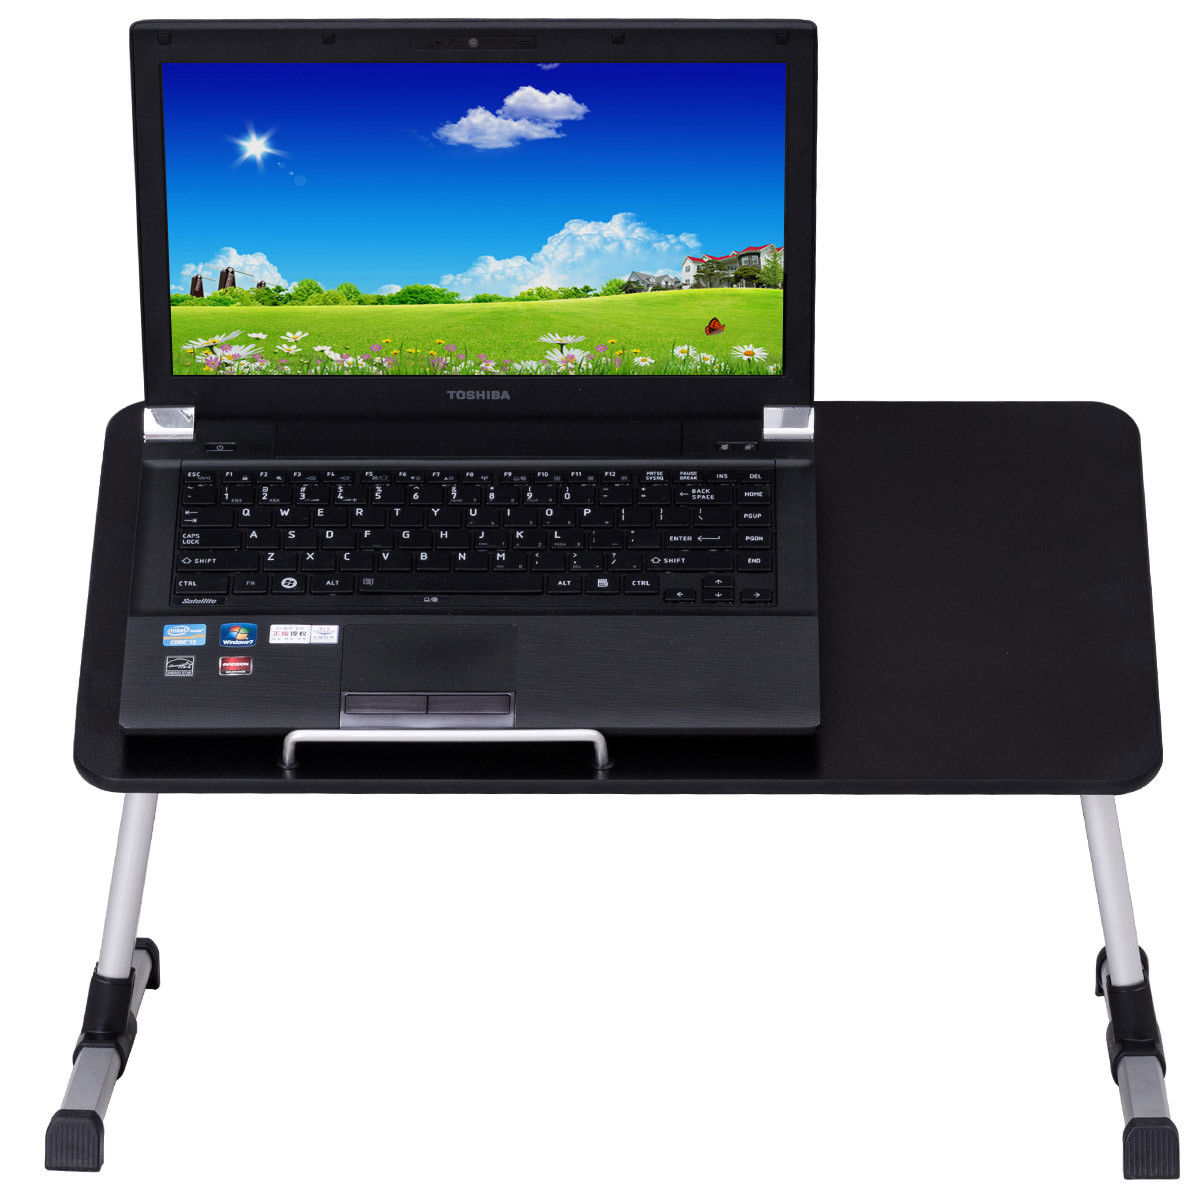 Goplus Portable Adjustable Standing Laptop Bed Tray Table Desk w/ Cooling Fan Black